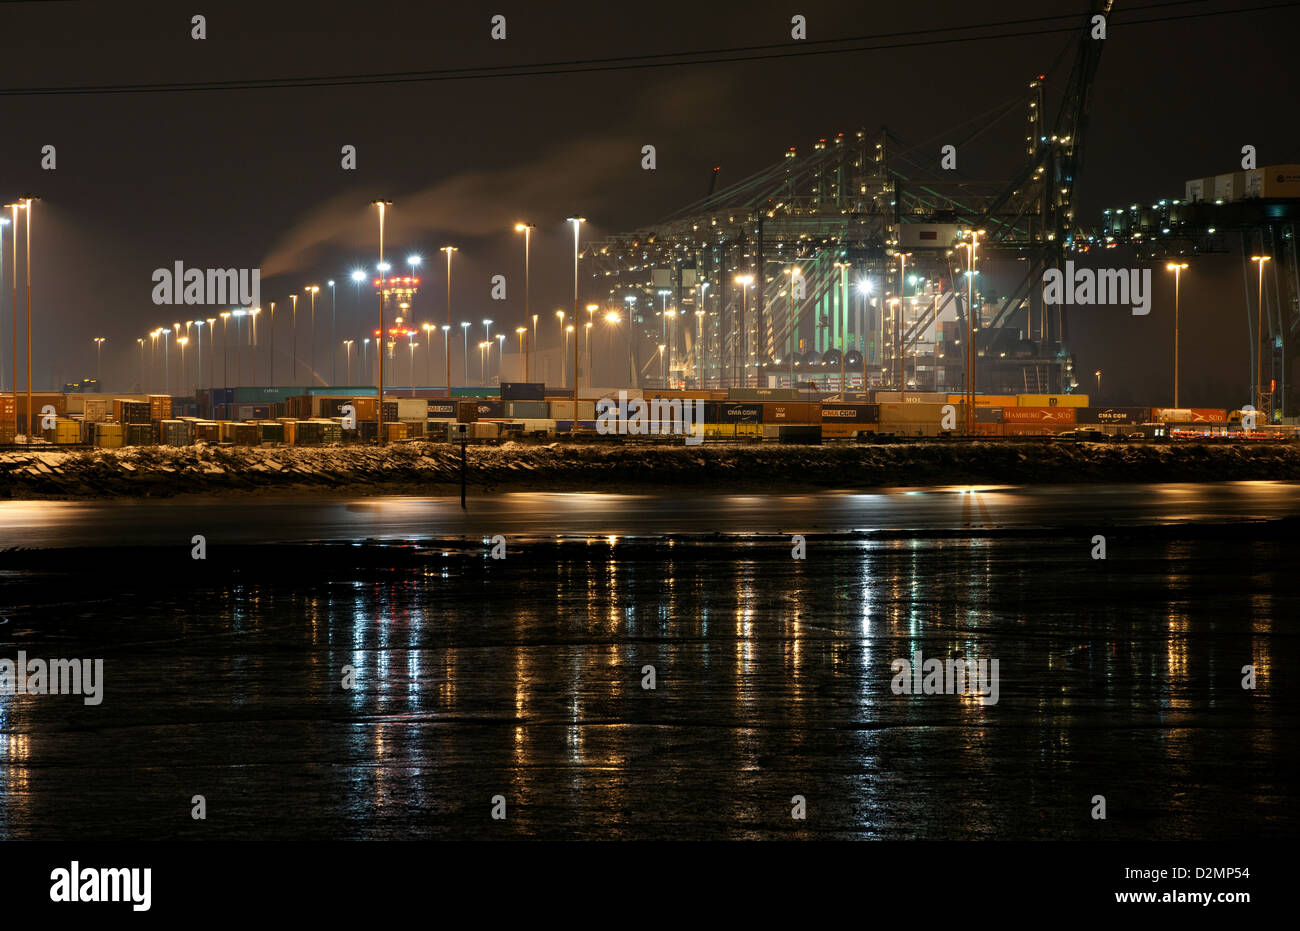 Night photograph of the Southampton Container Port, Southampton Water, Southampton, Hampshire, England, UK. Stock Photo